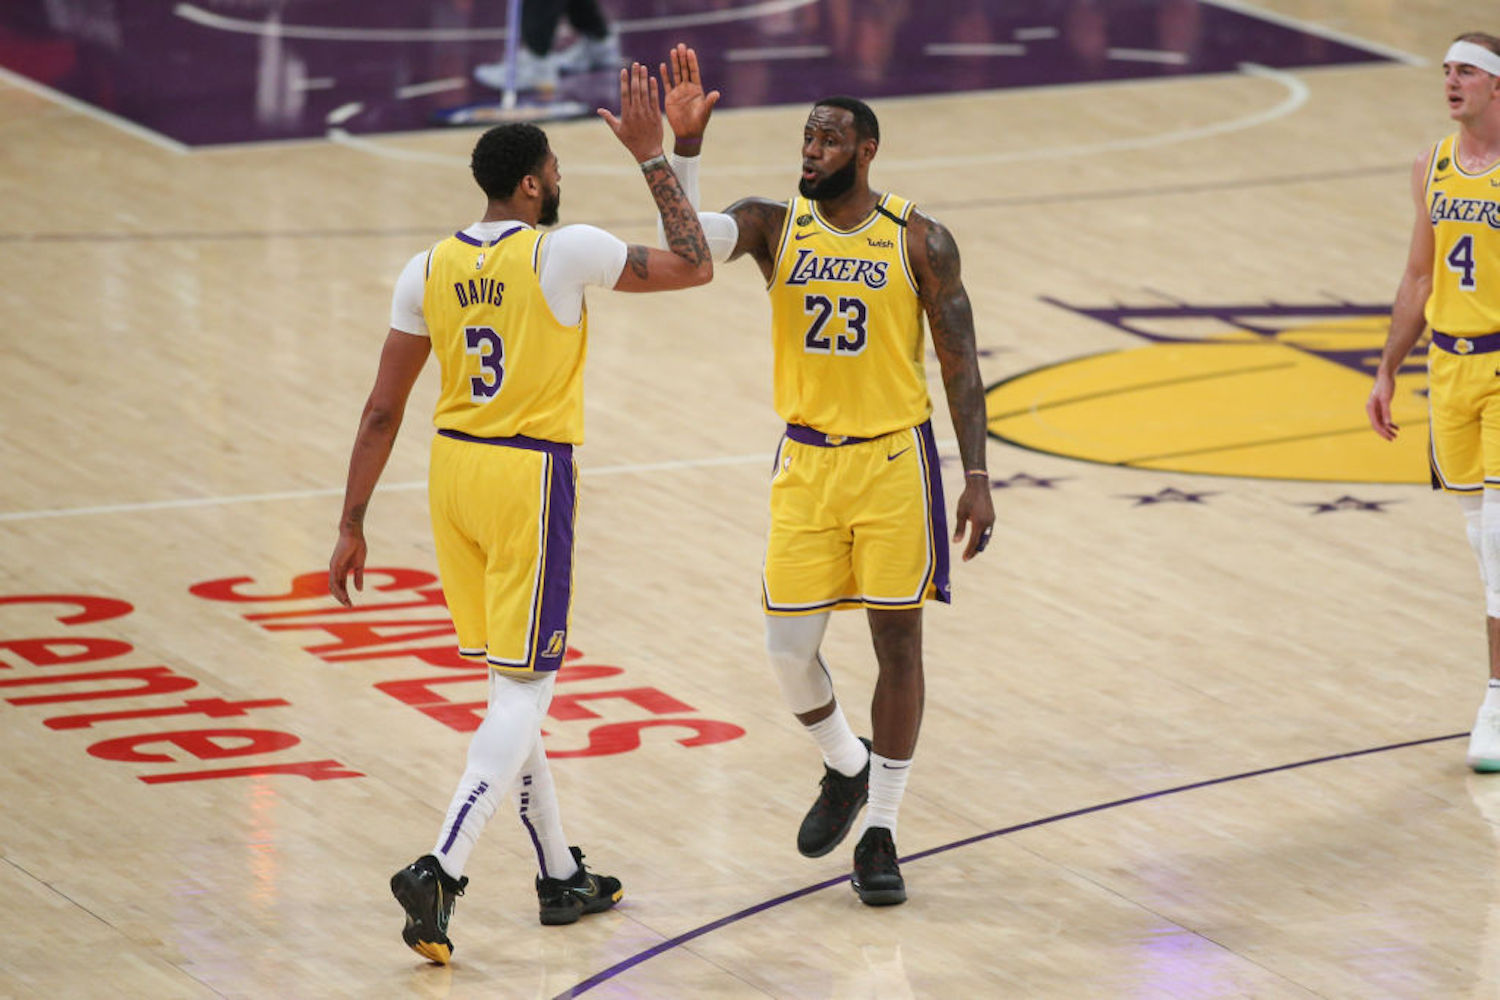 LeBron James has been considered the best player on every team he's played for, but he just passed the torch to a teammate for the first time.